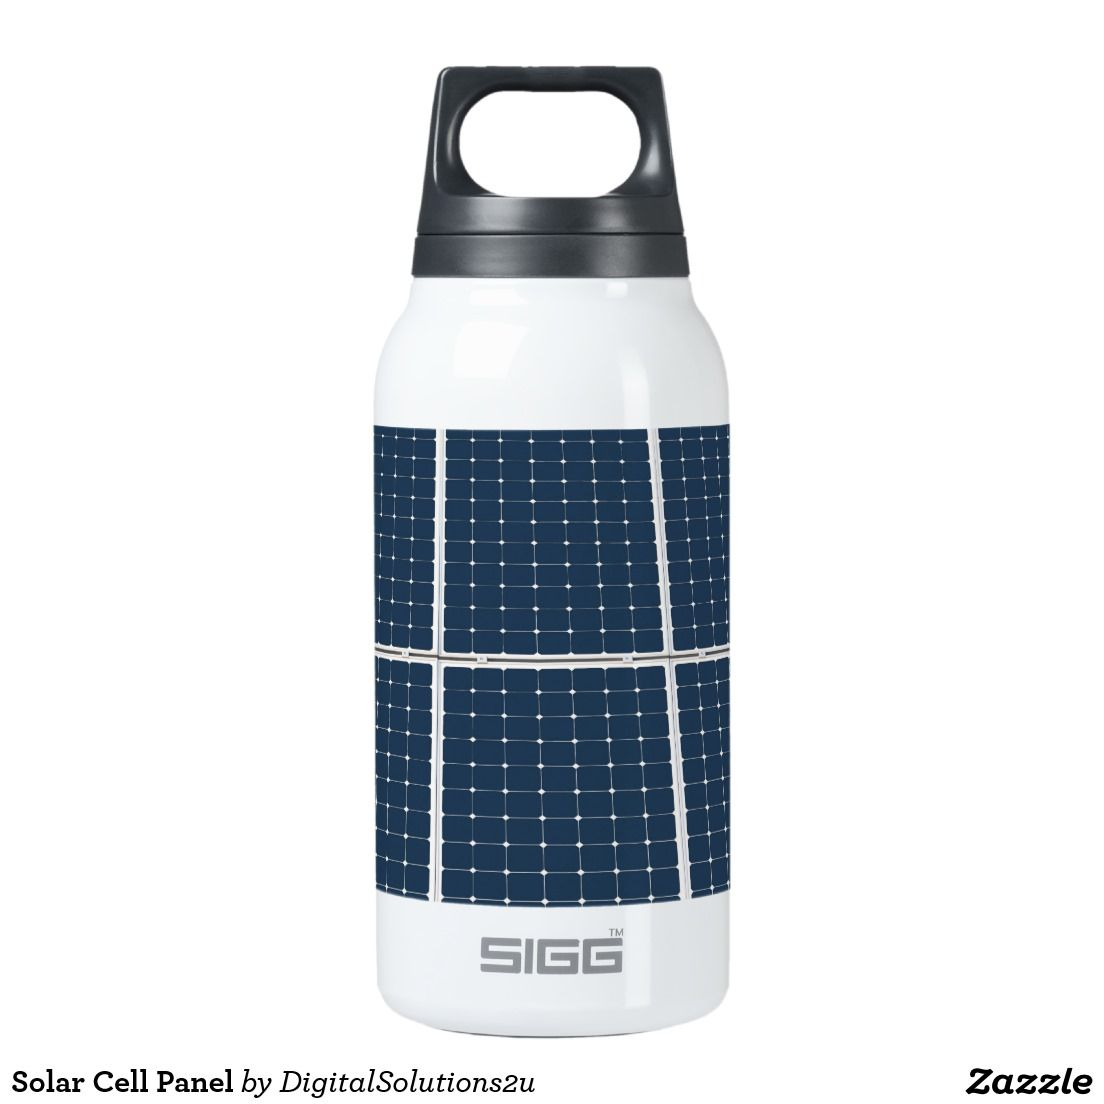 Thermos Bottle Solar Cell Insulated Oz Sigg Water Panel 10 dorBeWCx